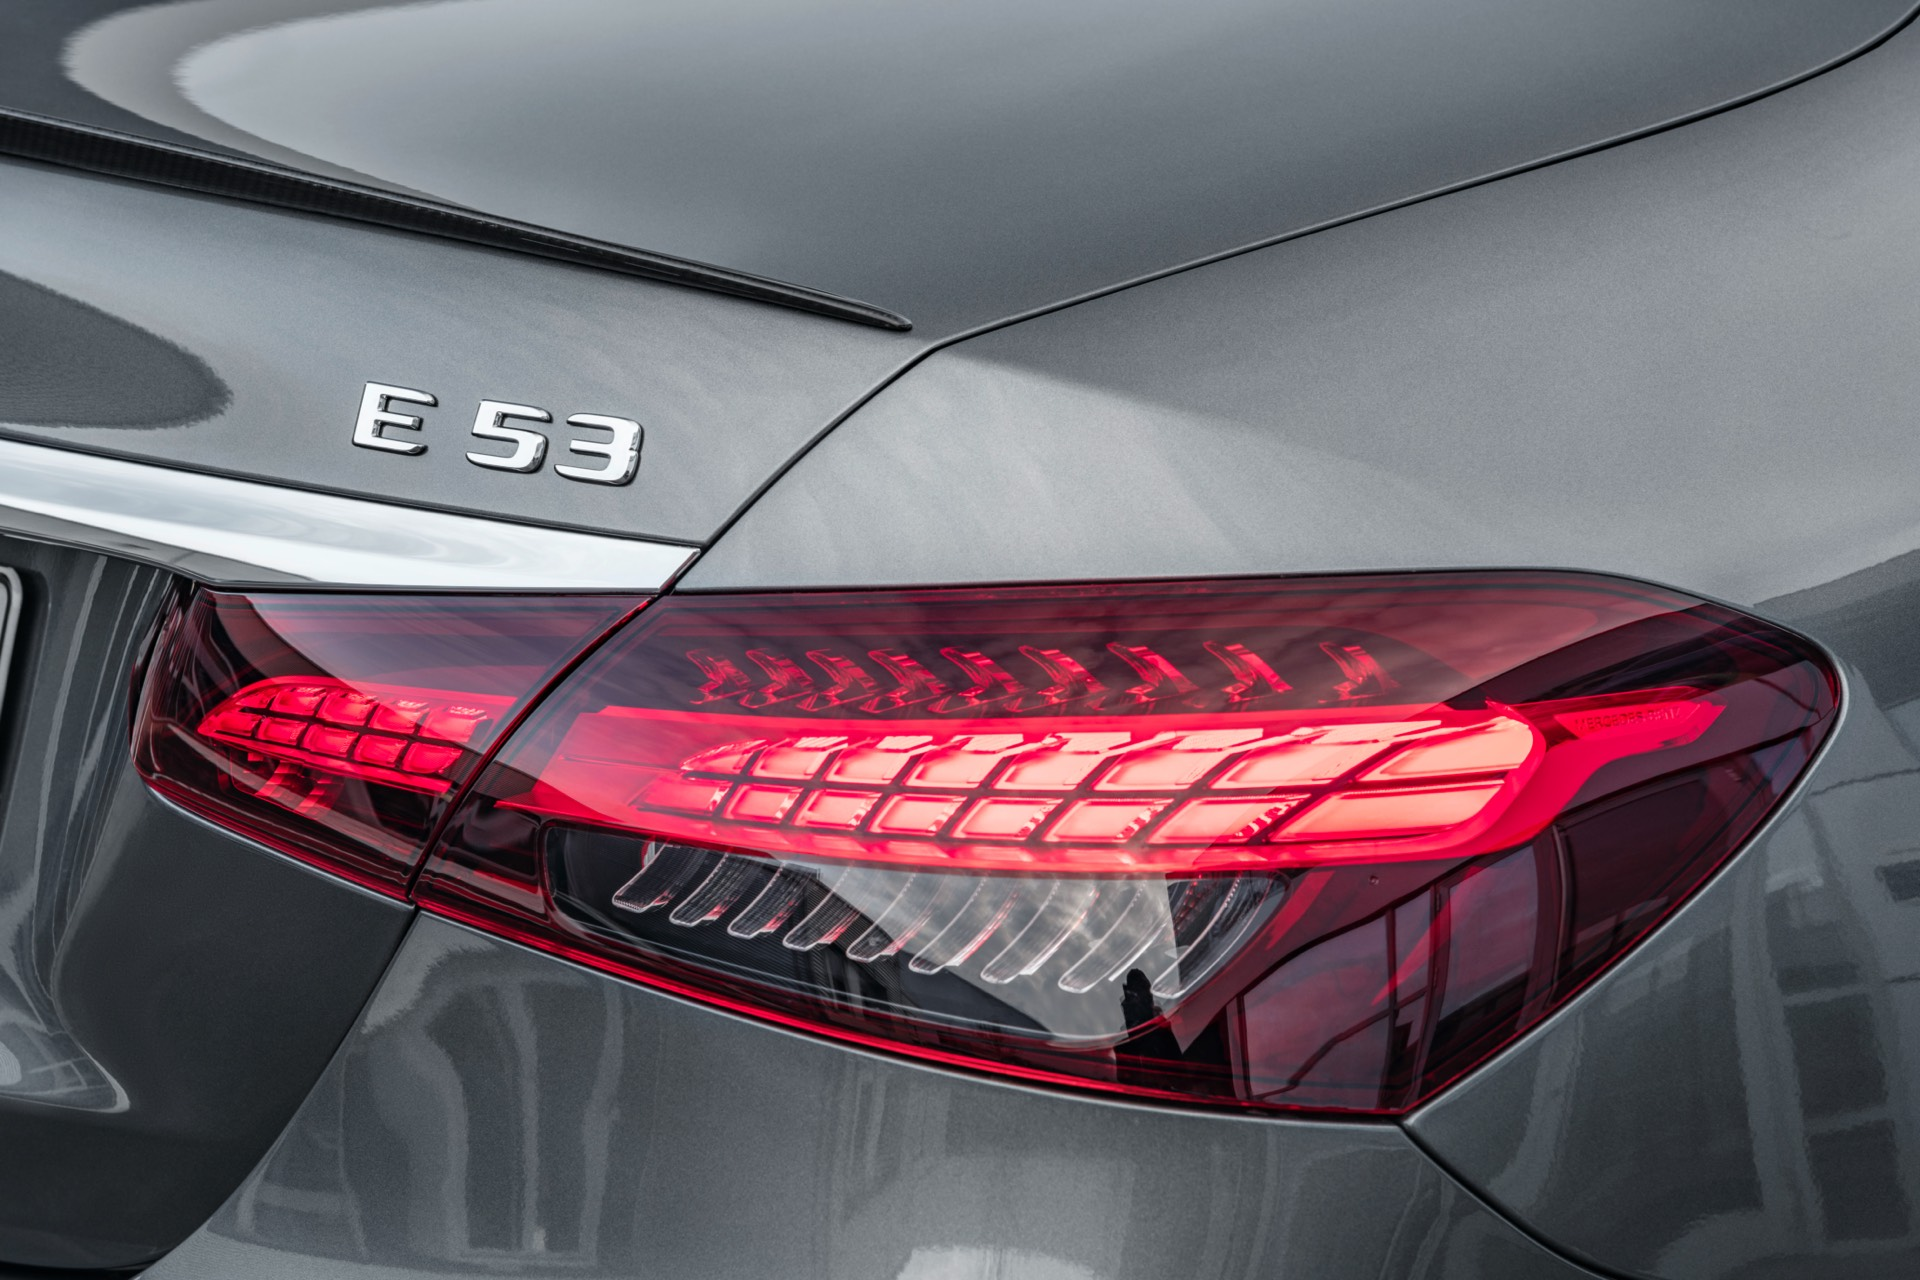 Mercedes-AMG E 53 Sedan Facelift Rear Lights